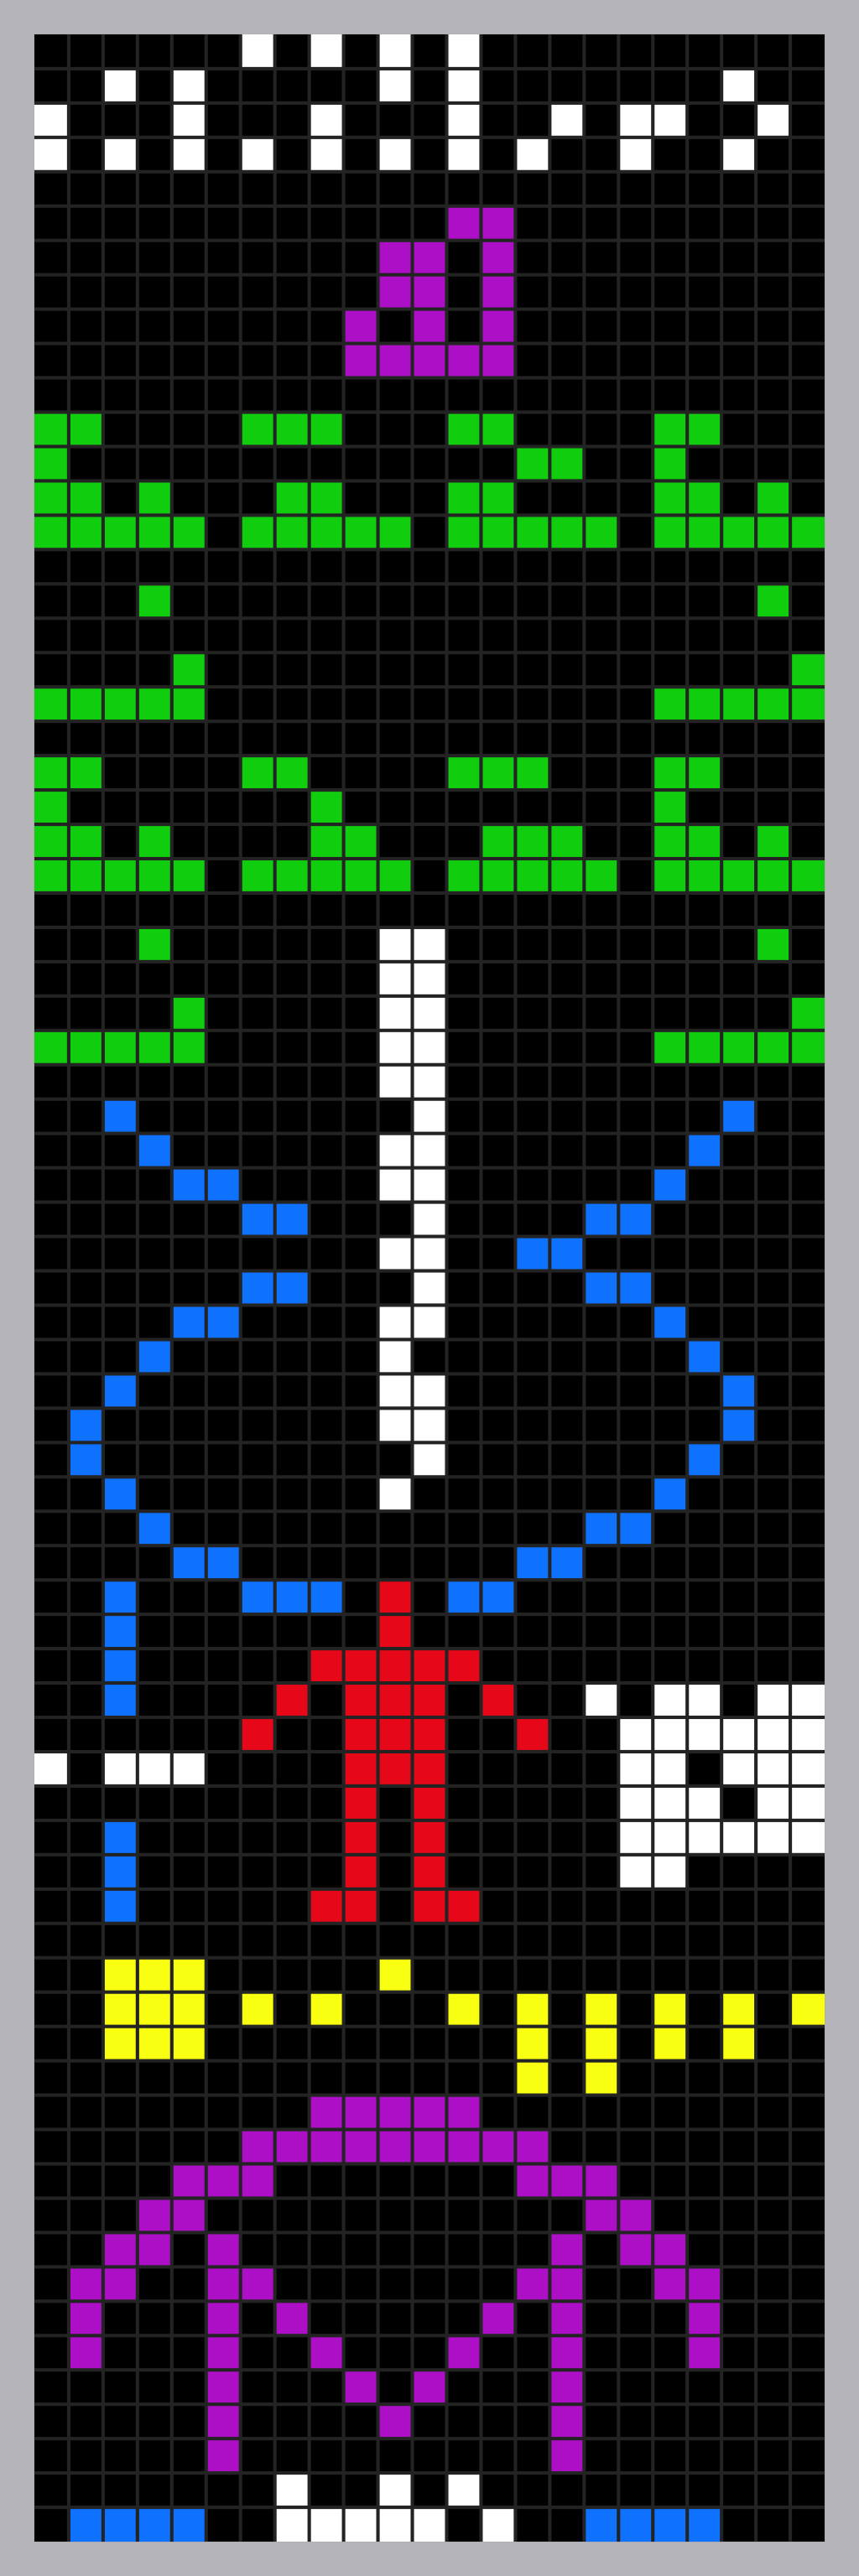 A colorized image of The Arecibo Message